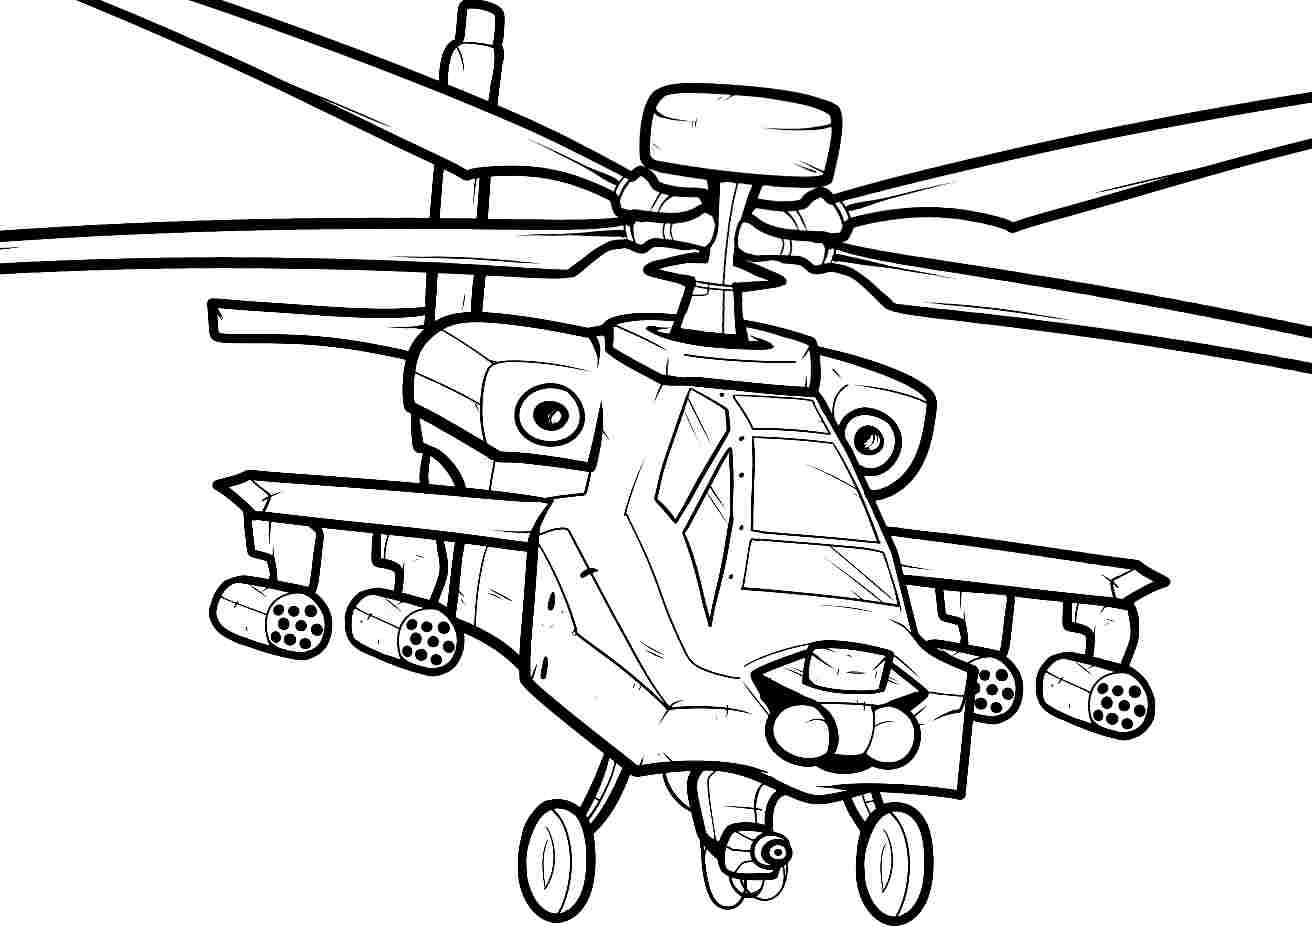 1312x927 Coloring Pages Draw A Helicopter